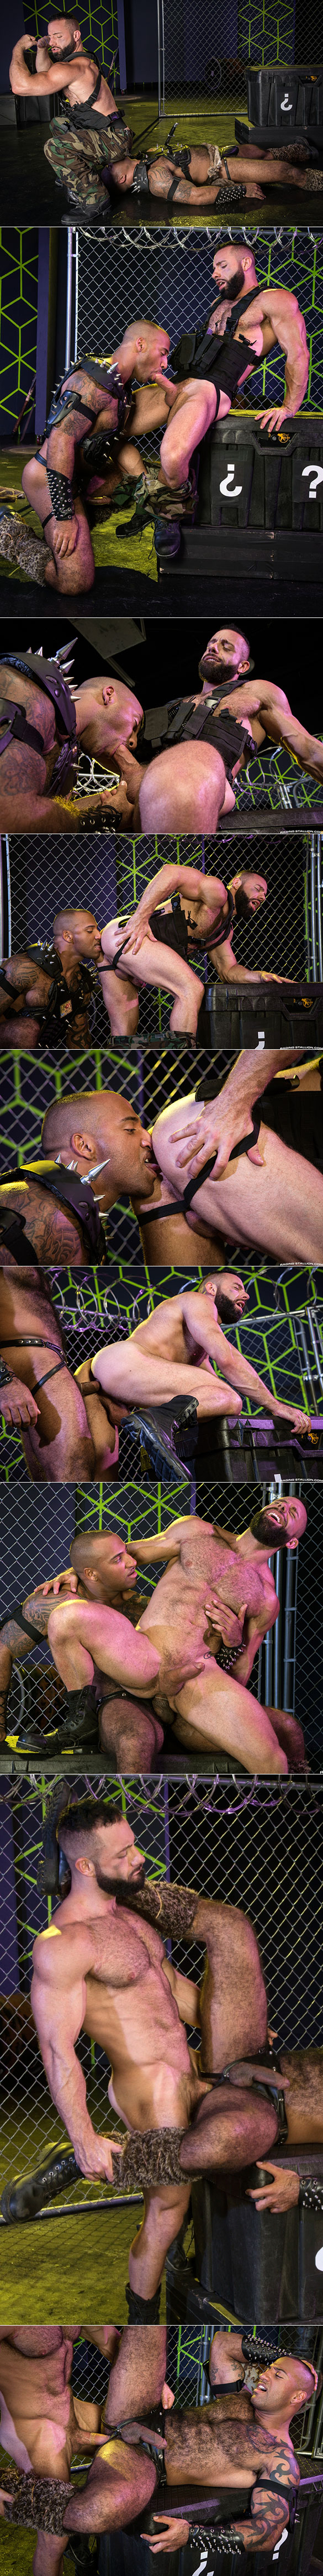 """Raging Stallion: Eddy CeeTee and Daymin Voss pound each other in """"Gaymers"""""""